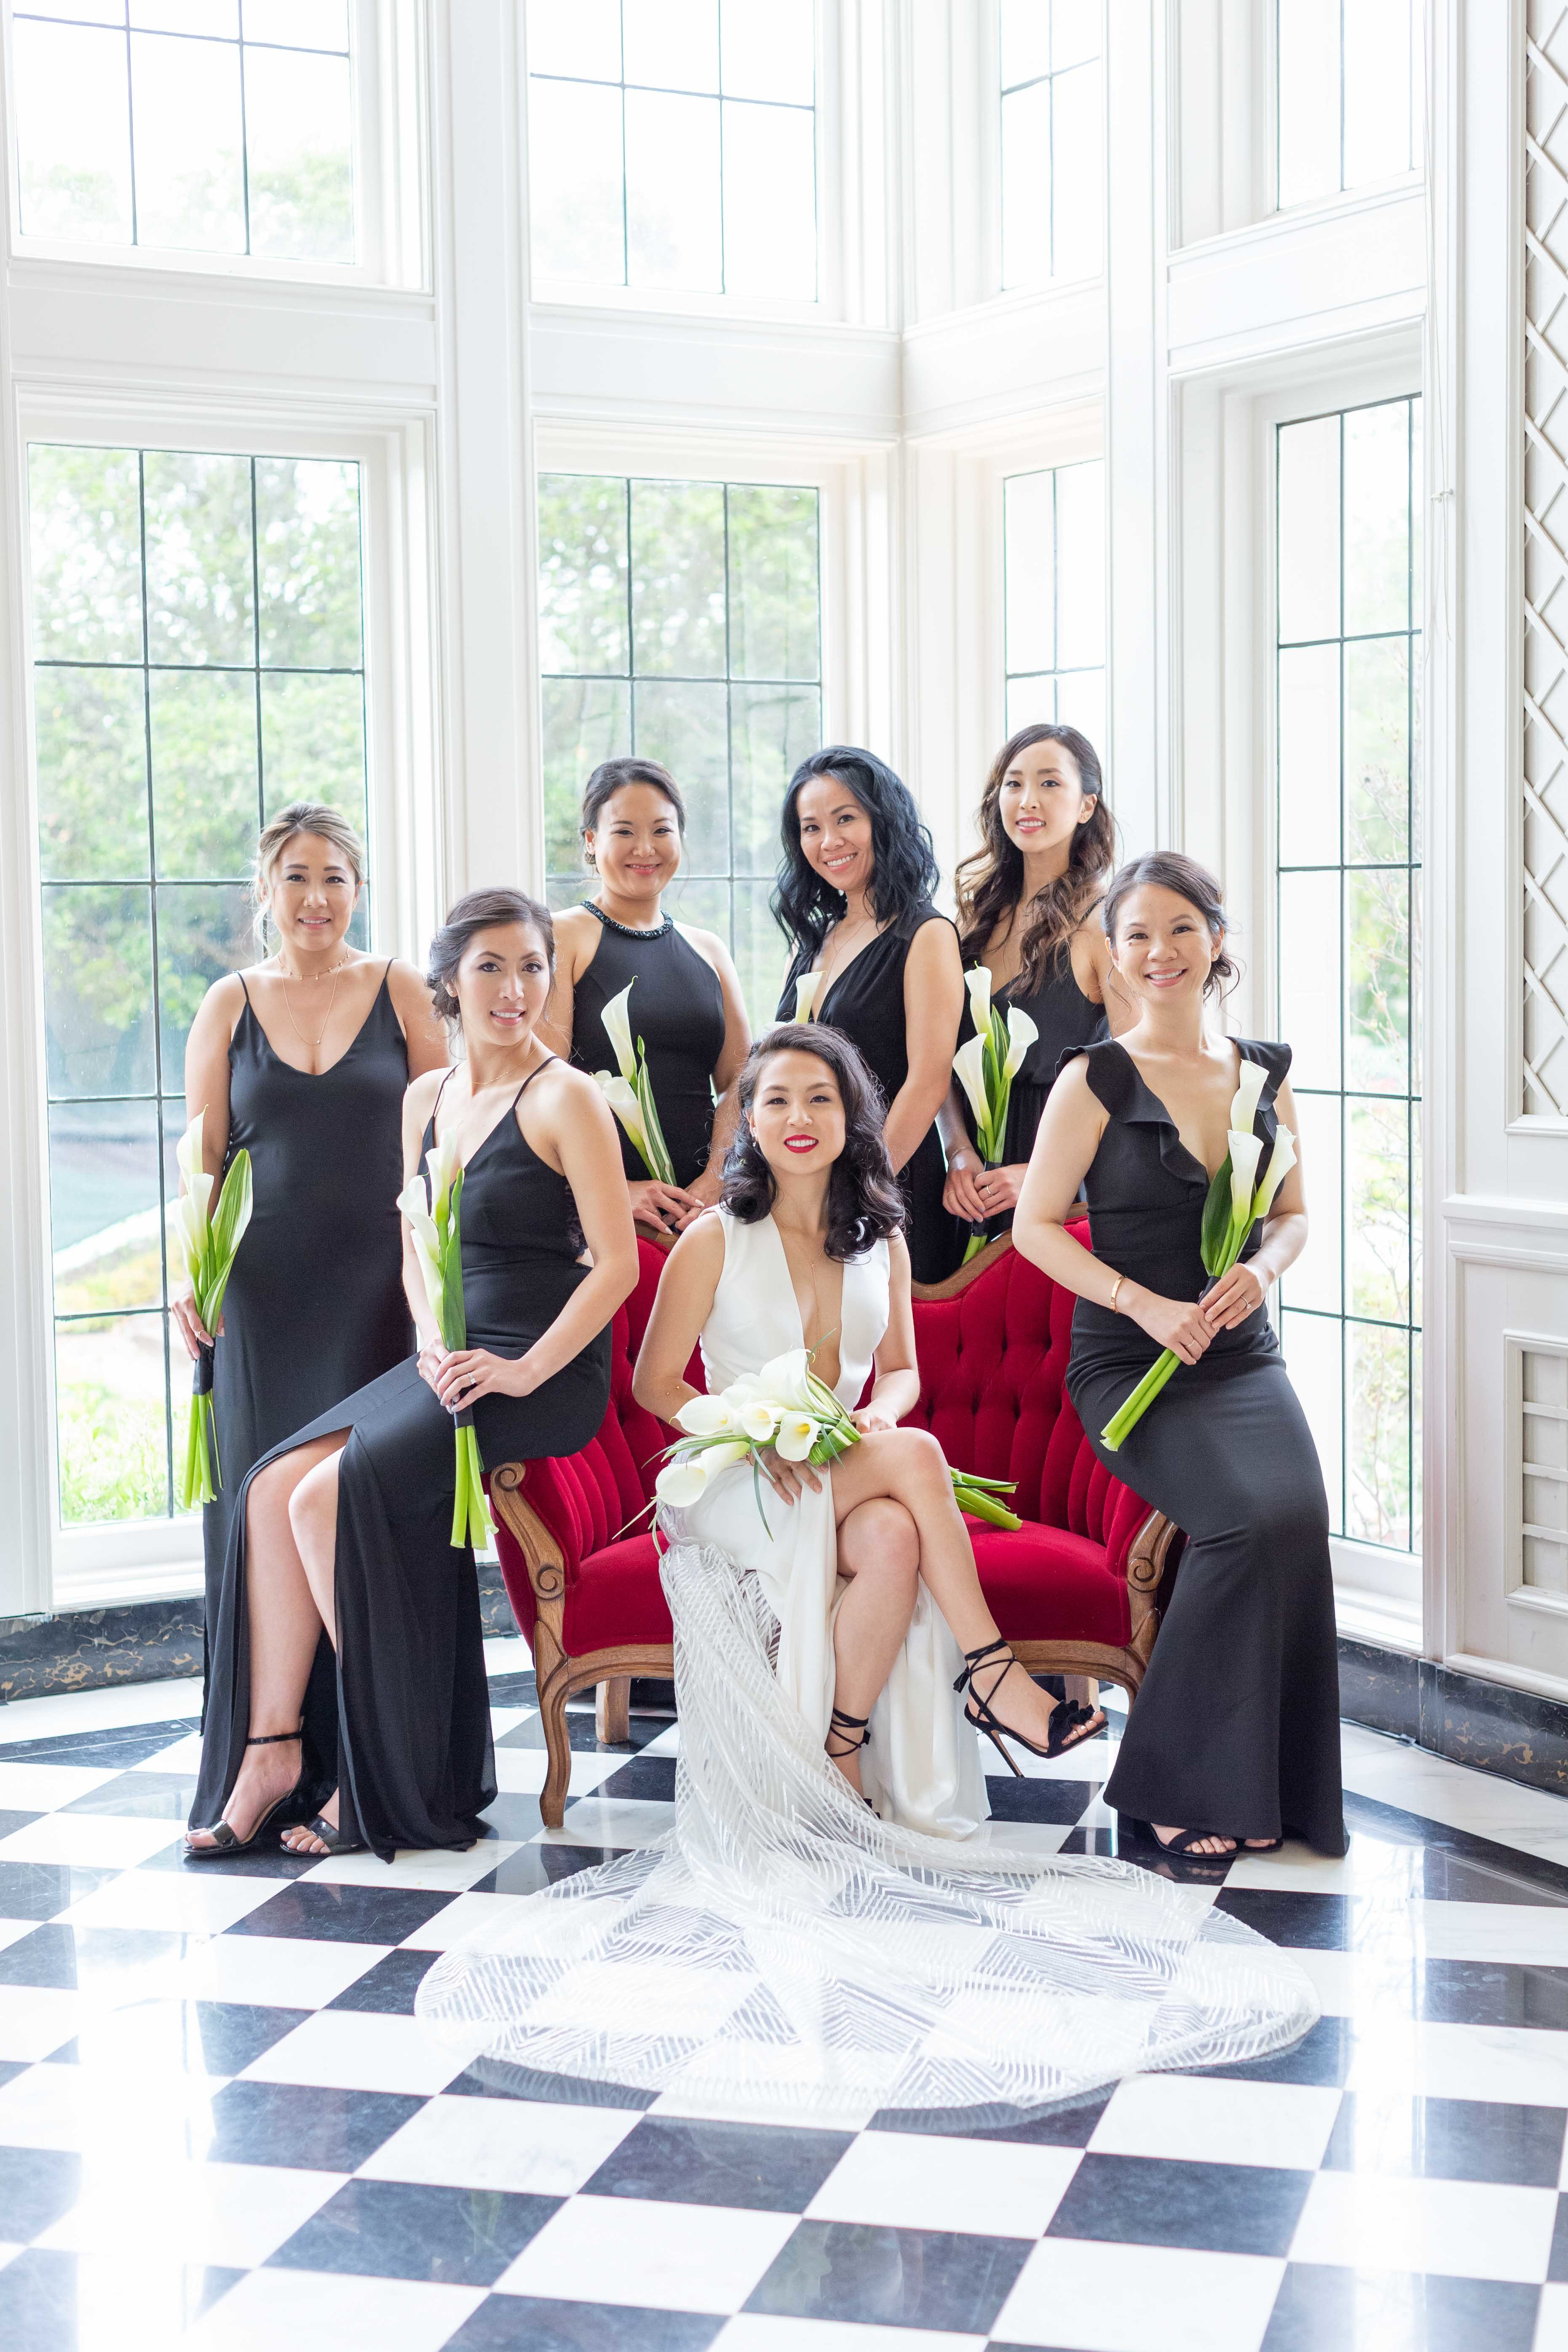 Black and white bridal party bridesmaid dresses.